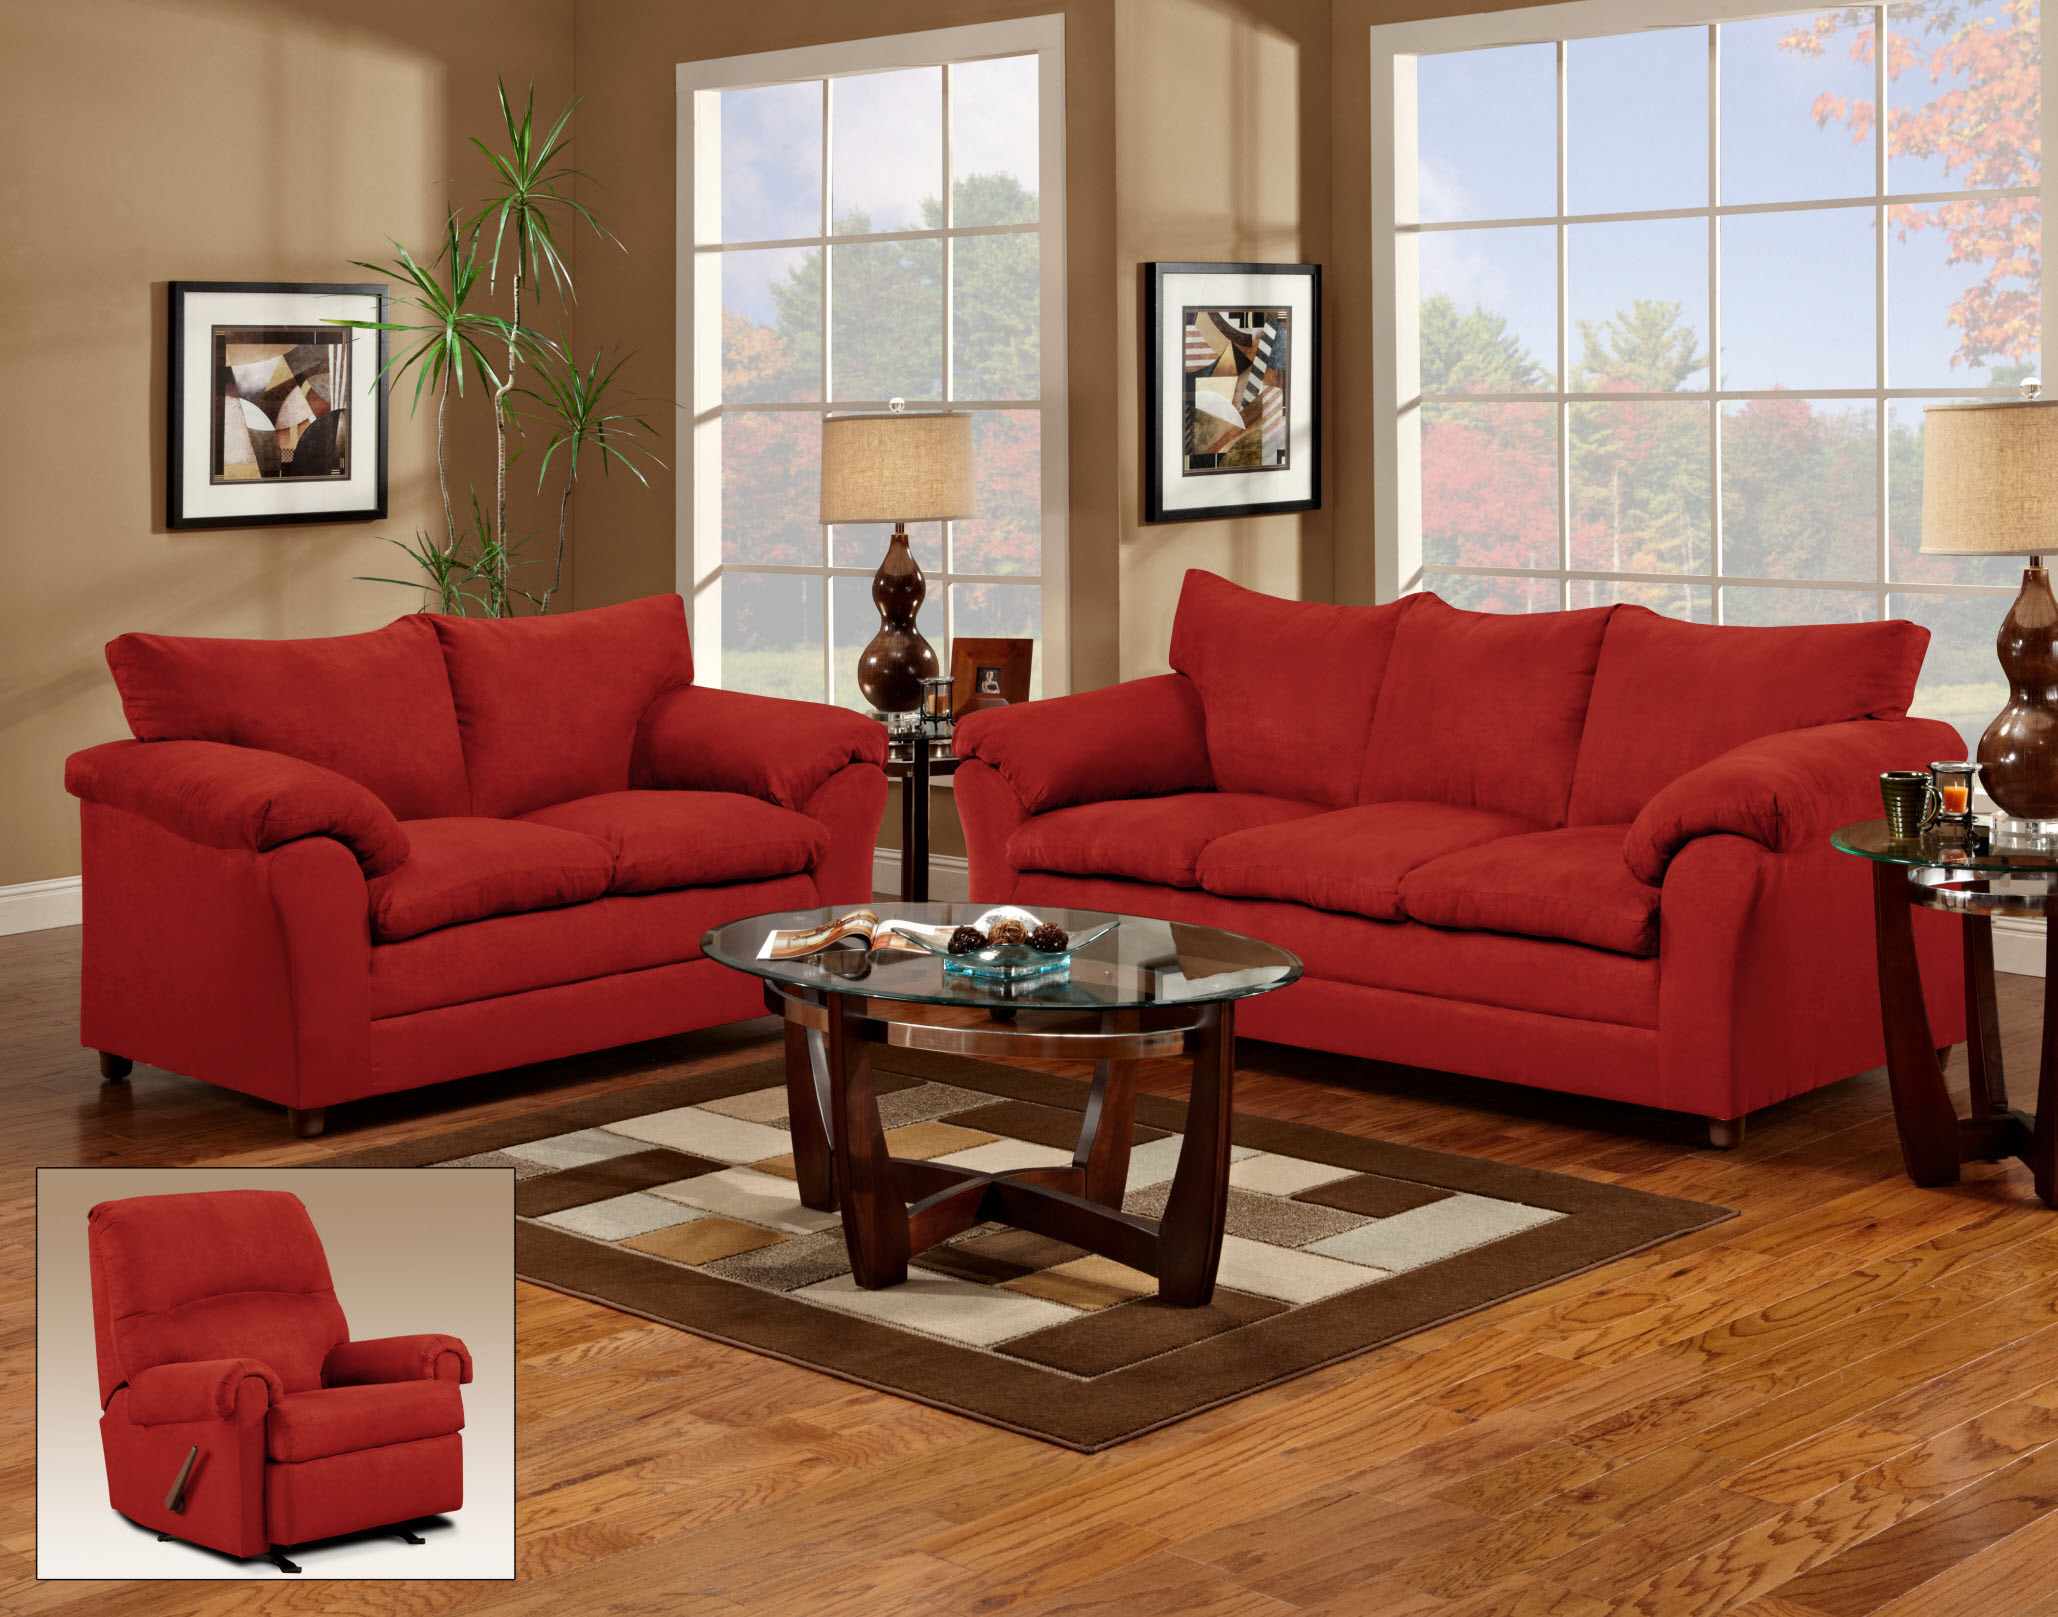 Beautiful Red Couches Living Room 63 For Living Room Sofa Ideas with Red Couches Living Room